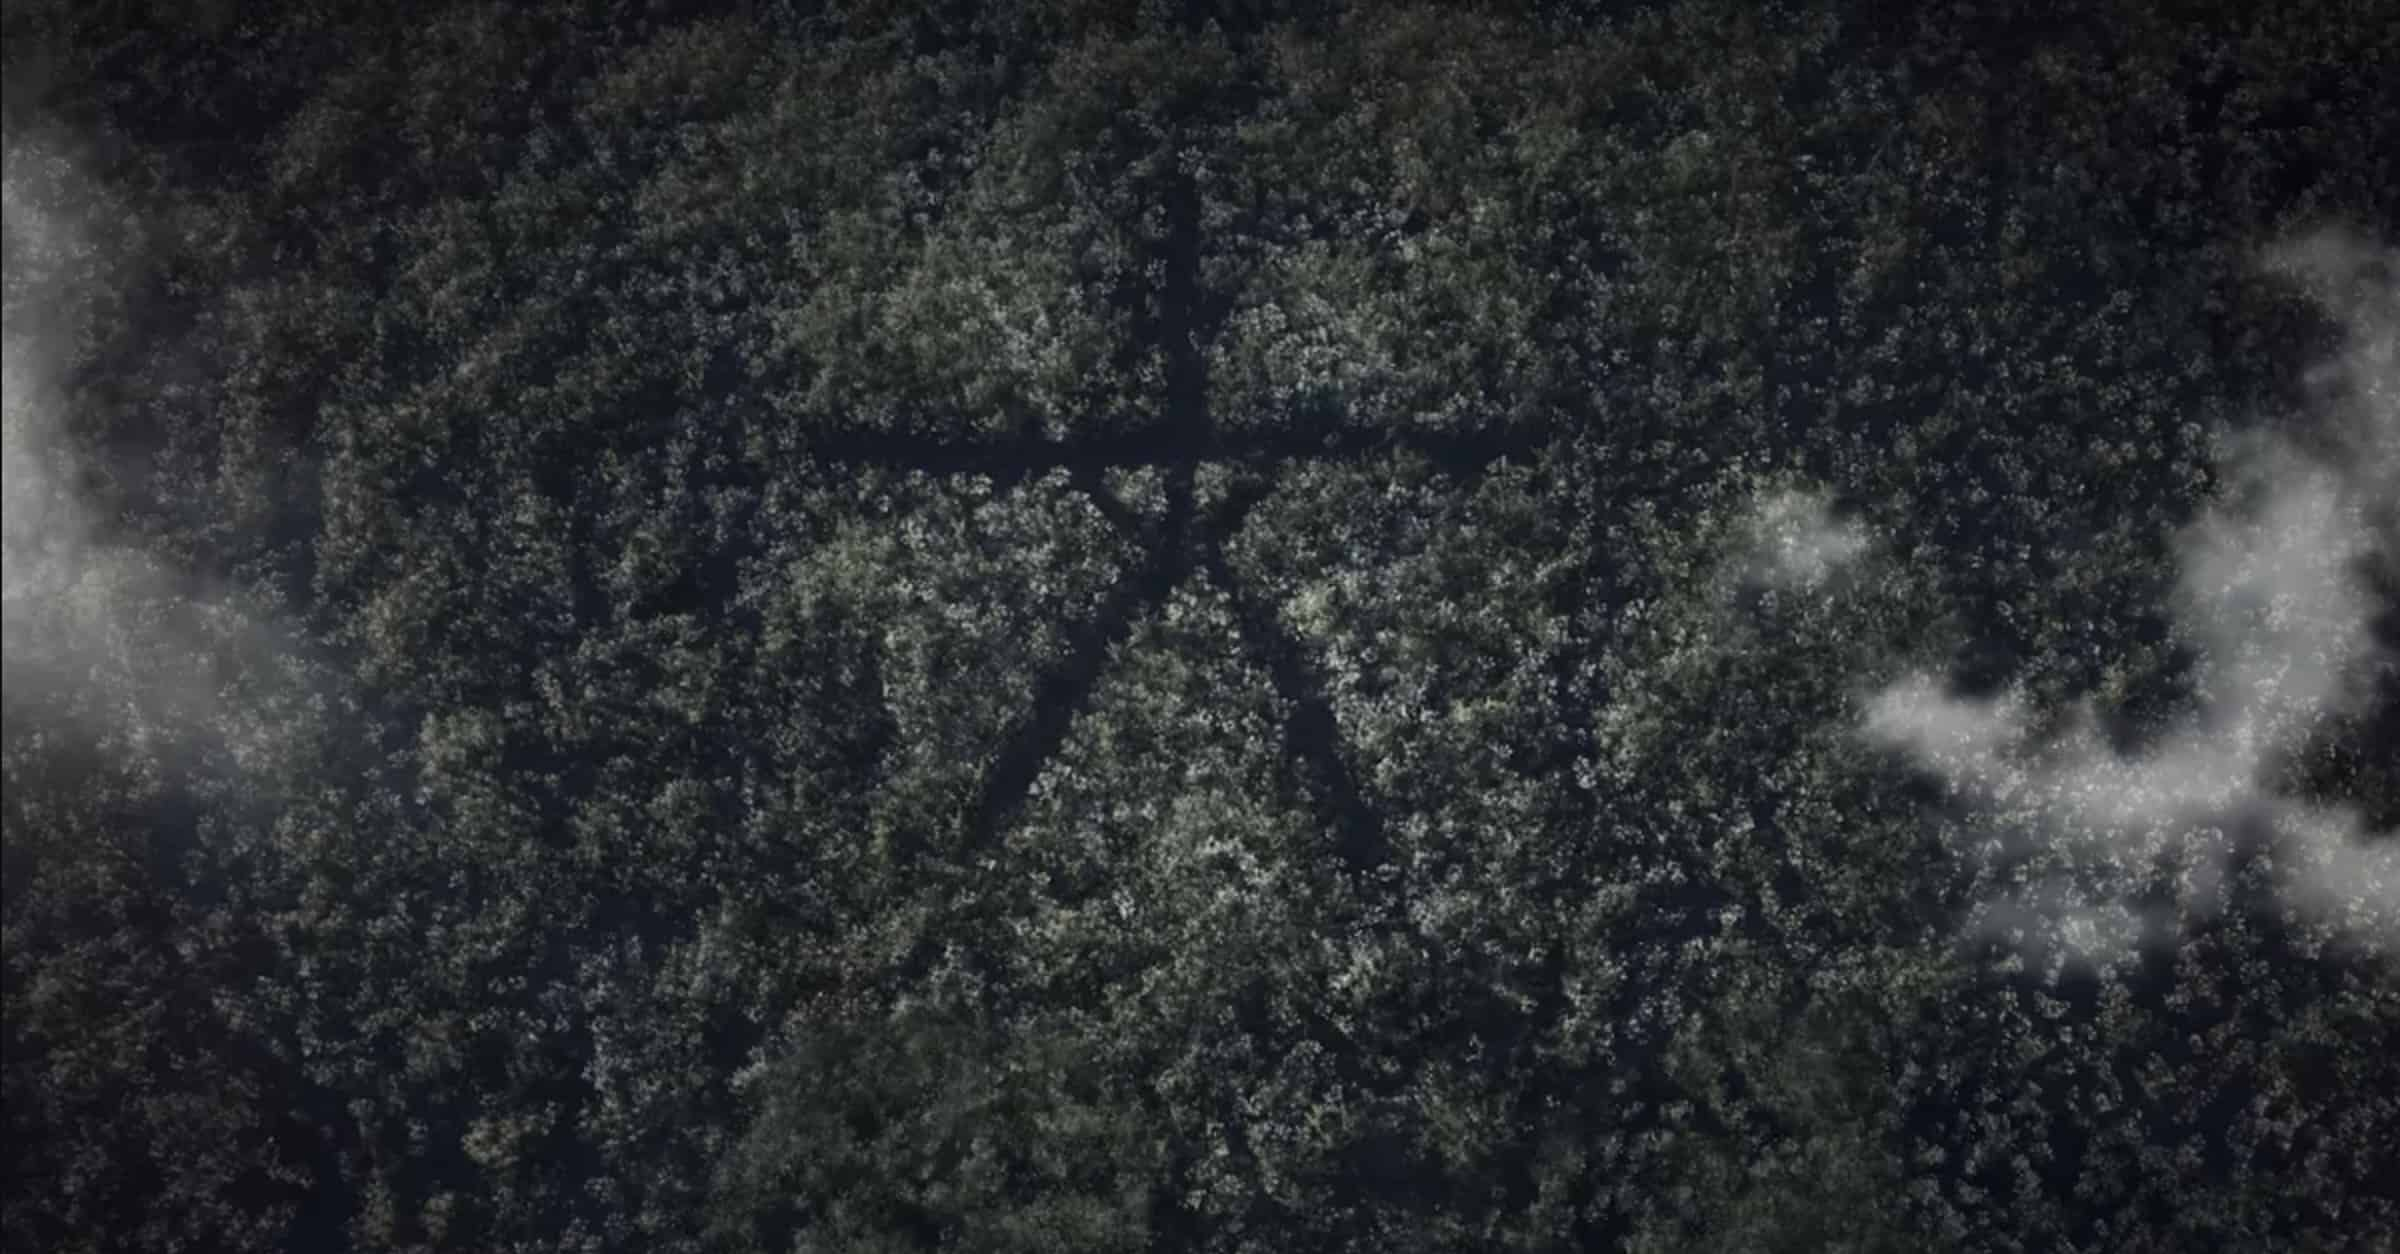 blairwitchgamebanner - E3 2019: We Interview Bloober Team About BLAIR WITCH